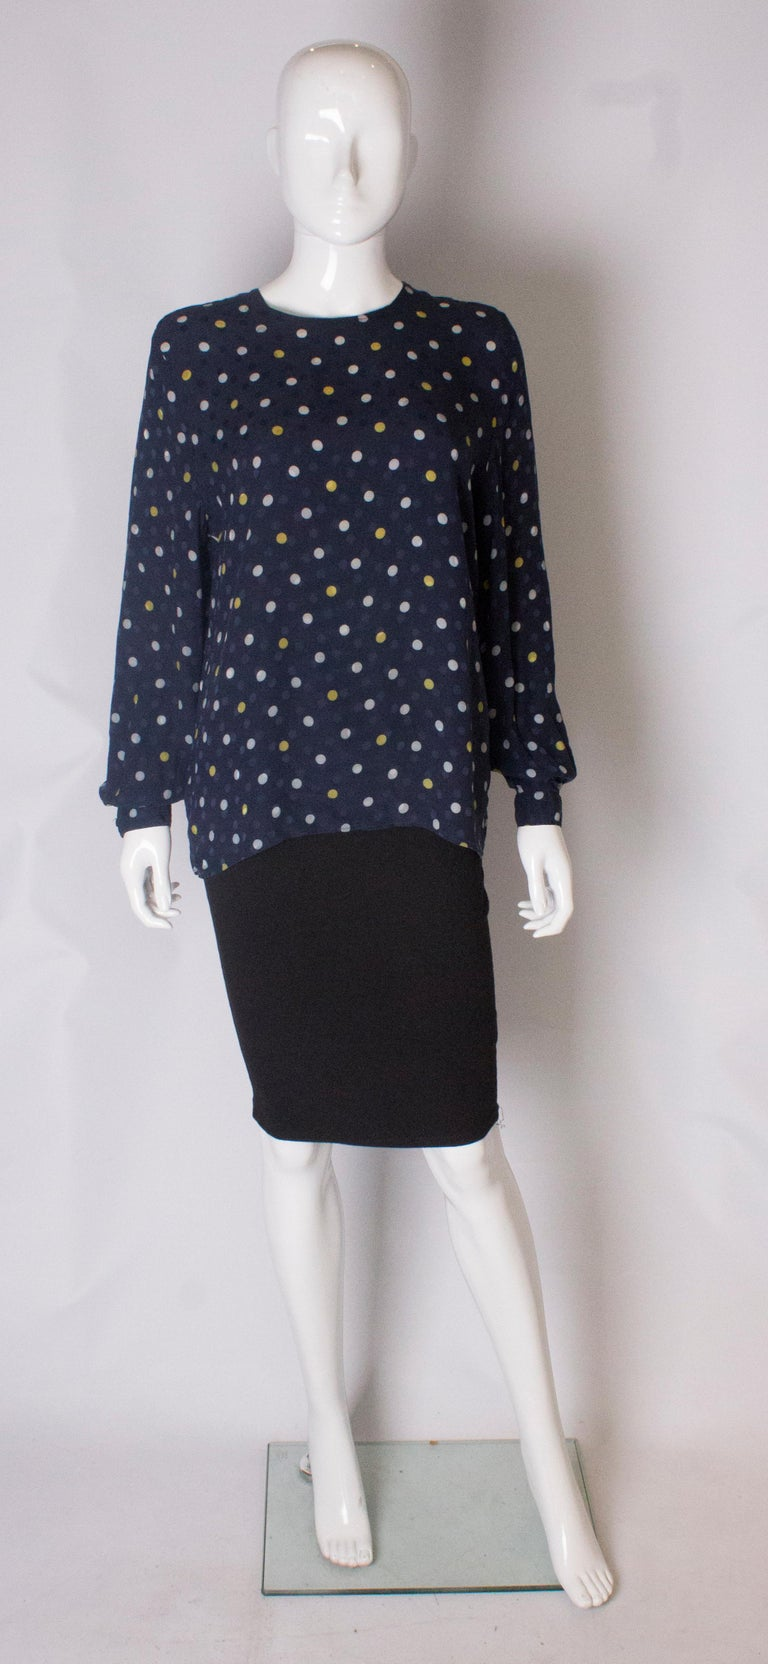 A chic silk blouse by Valentino. The blouse has long sleeves with a single button cuff, and a button opening at the back. The silk has blue dots in the background with yellow and white spots in the foreground.